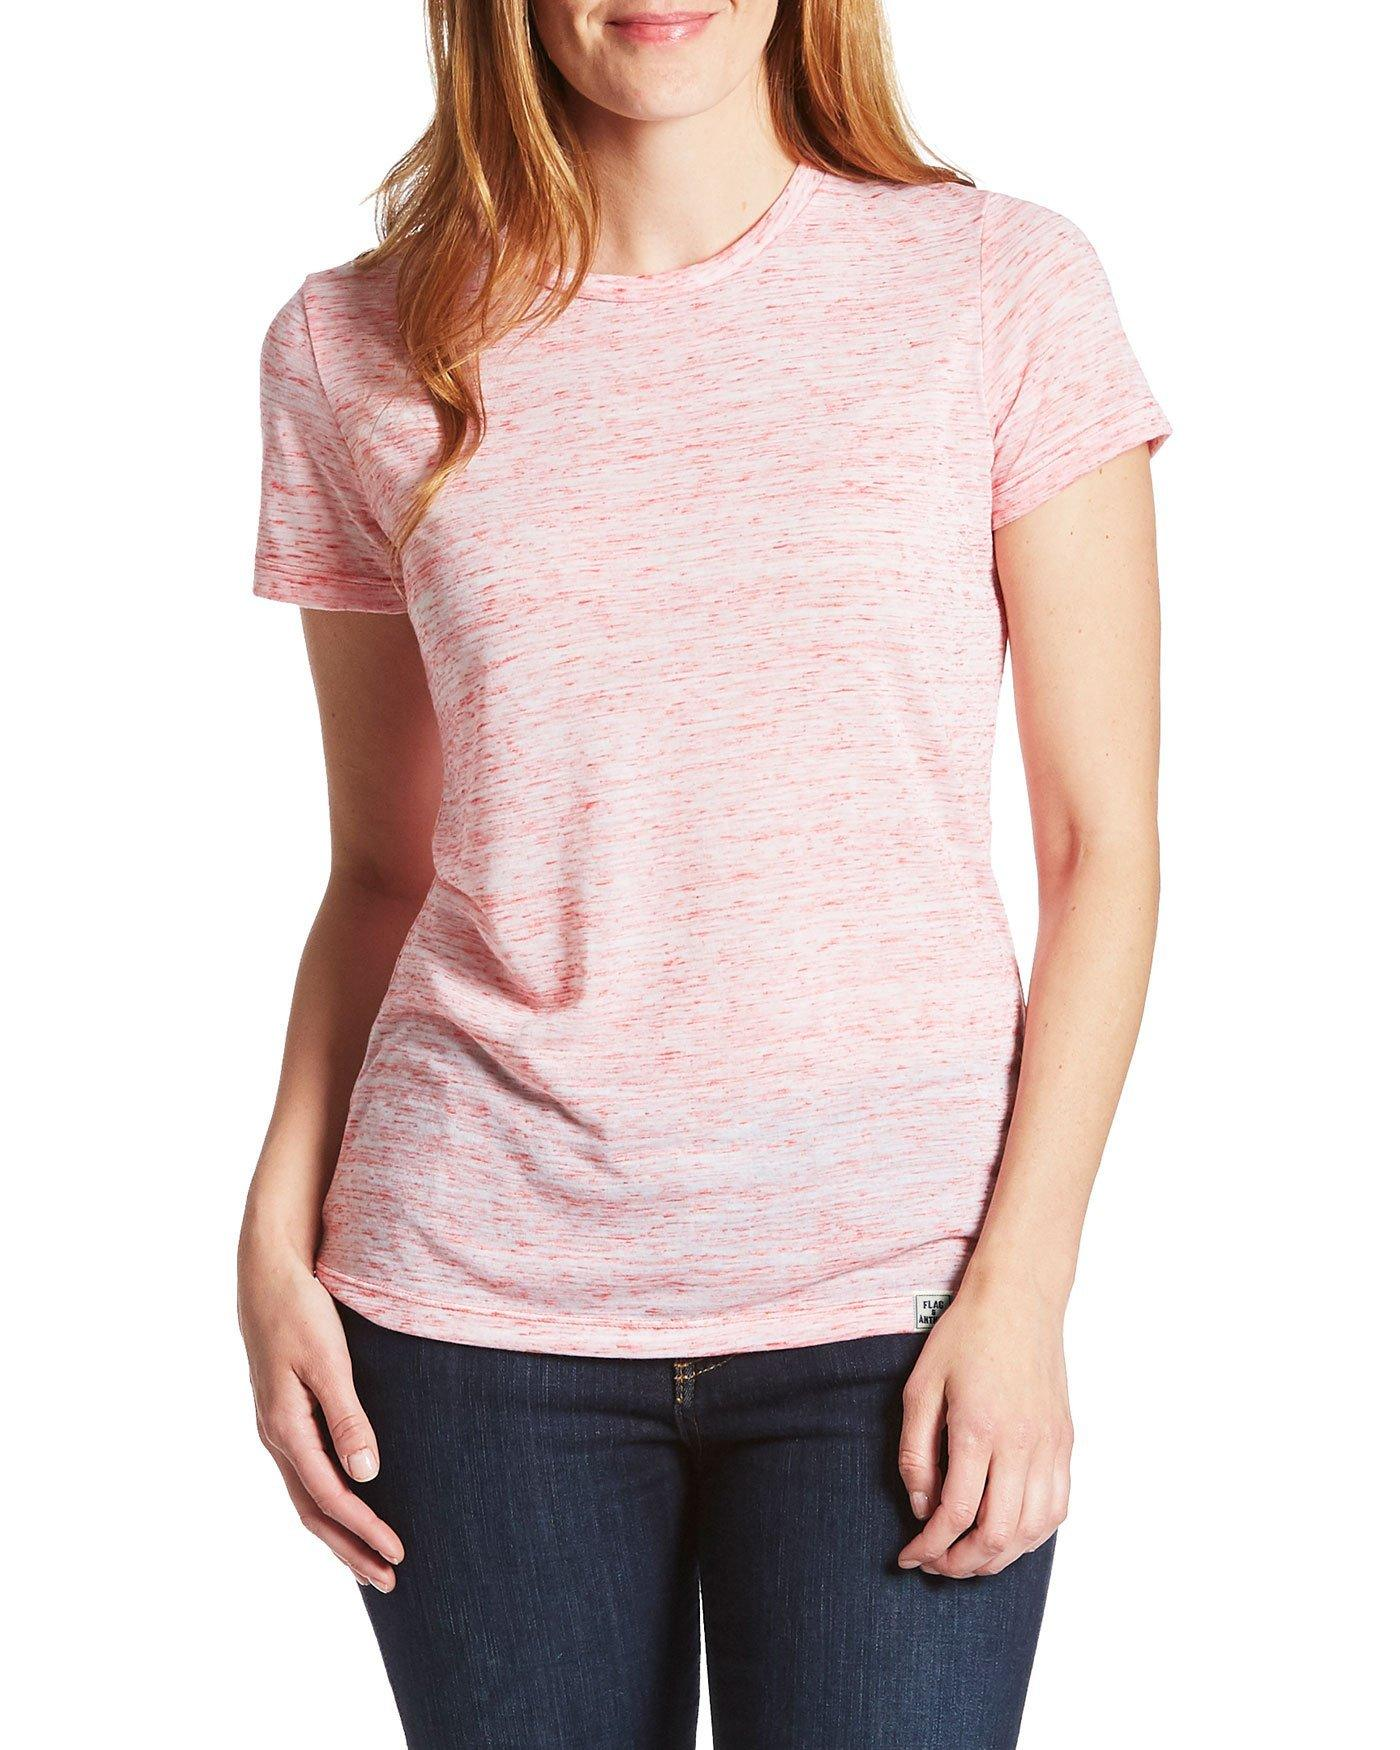 Women's Tees - BYRNEDALE WOMENS TEE - WHITE/RED (FINAL SALE)